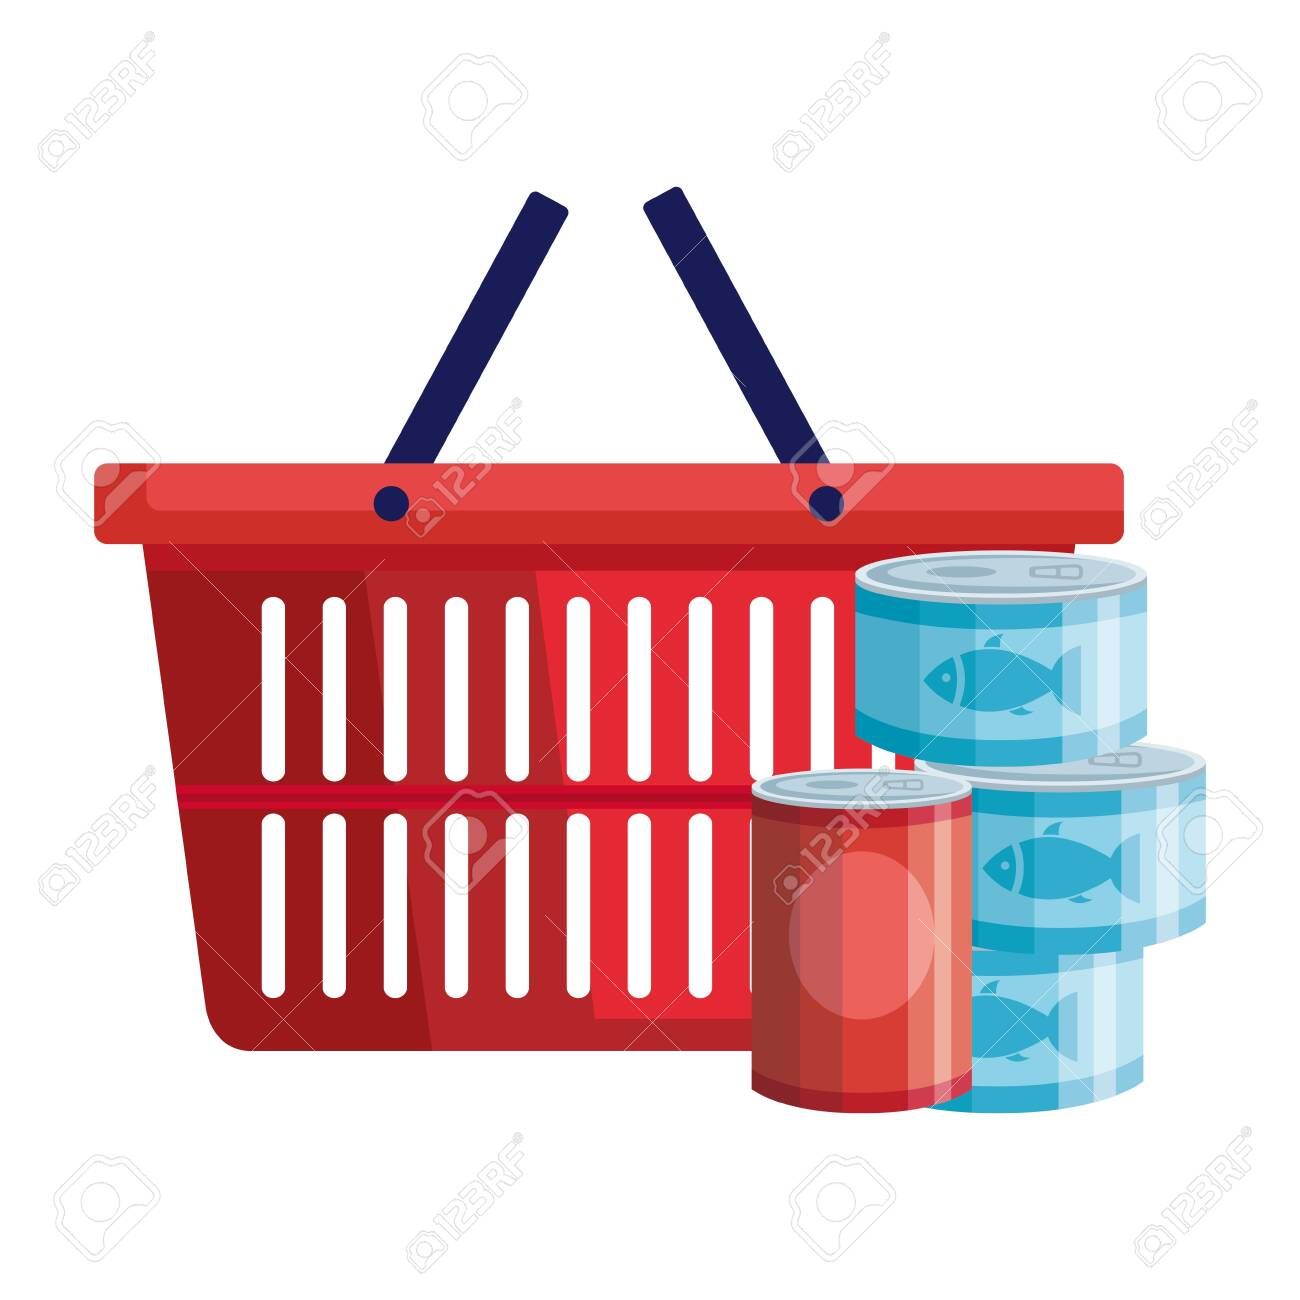 set of cans tuna food with basket shopping vector illustration design - 144318628